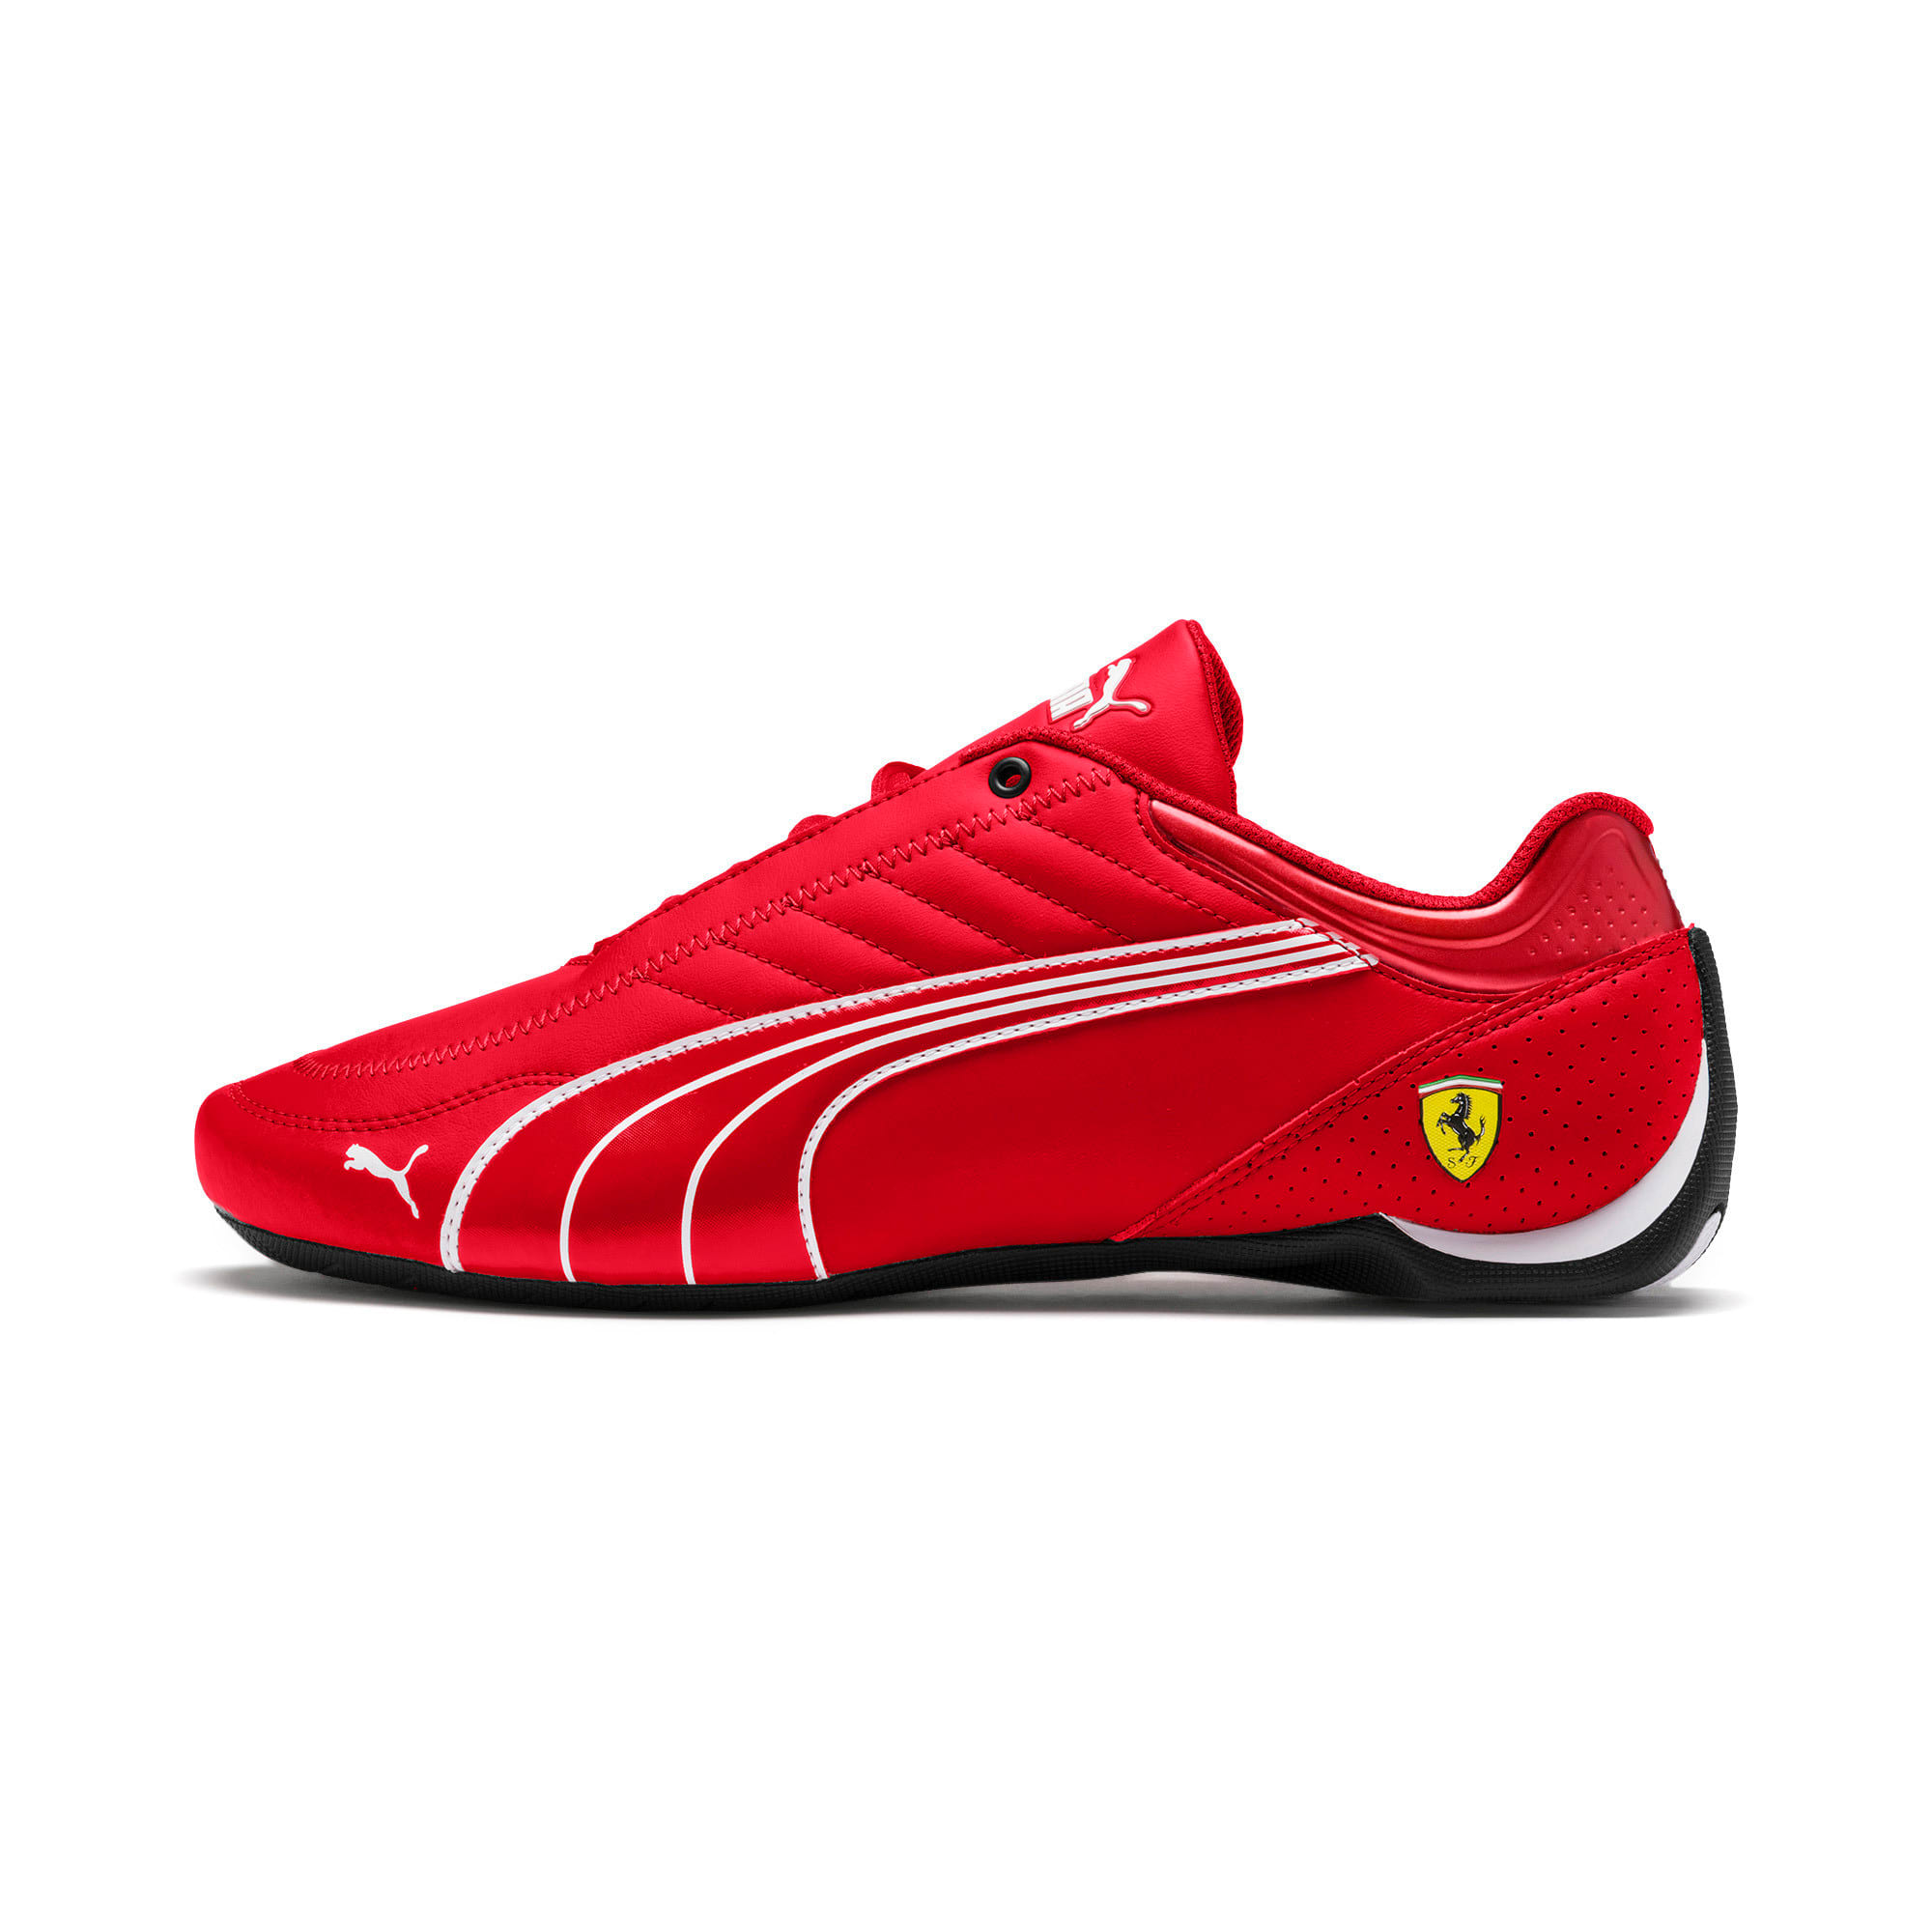 Thumbnail 1 of Ferrari Future Kart Cat Trainers, Rosso Corsa-Puma Black, medium